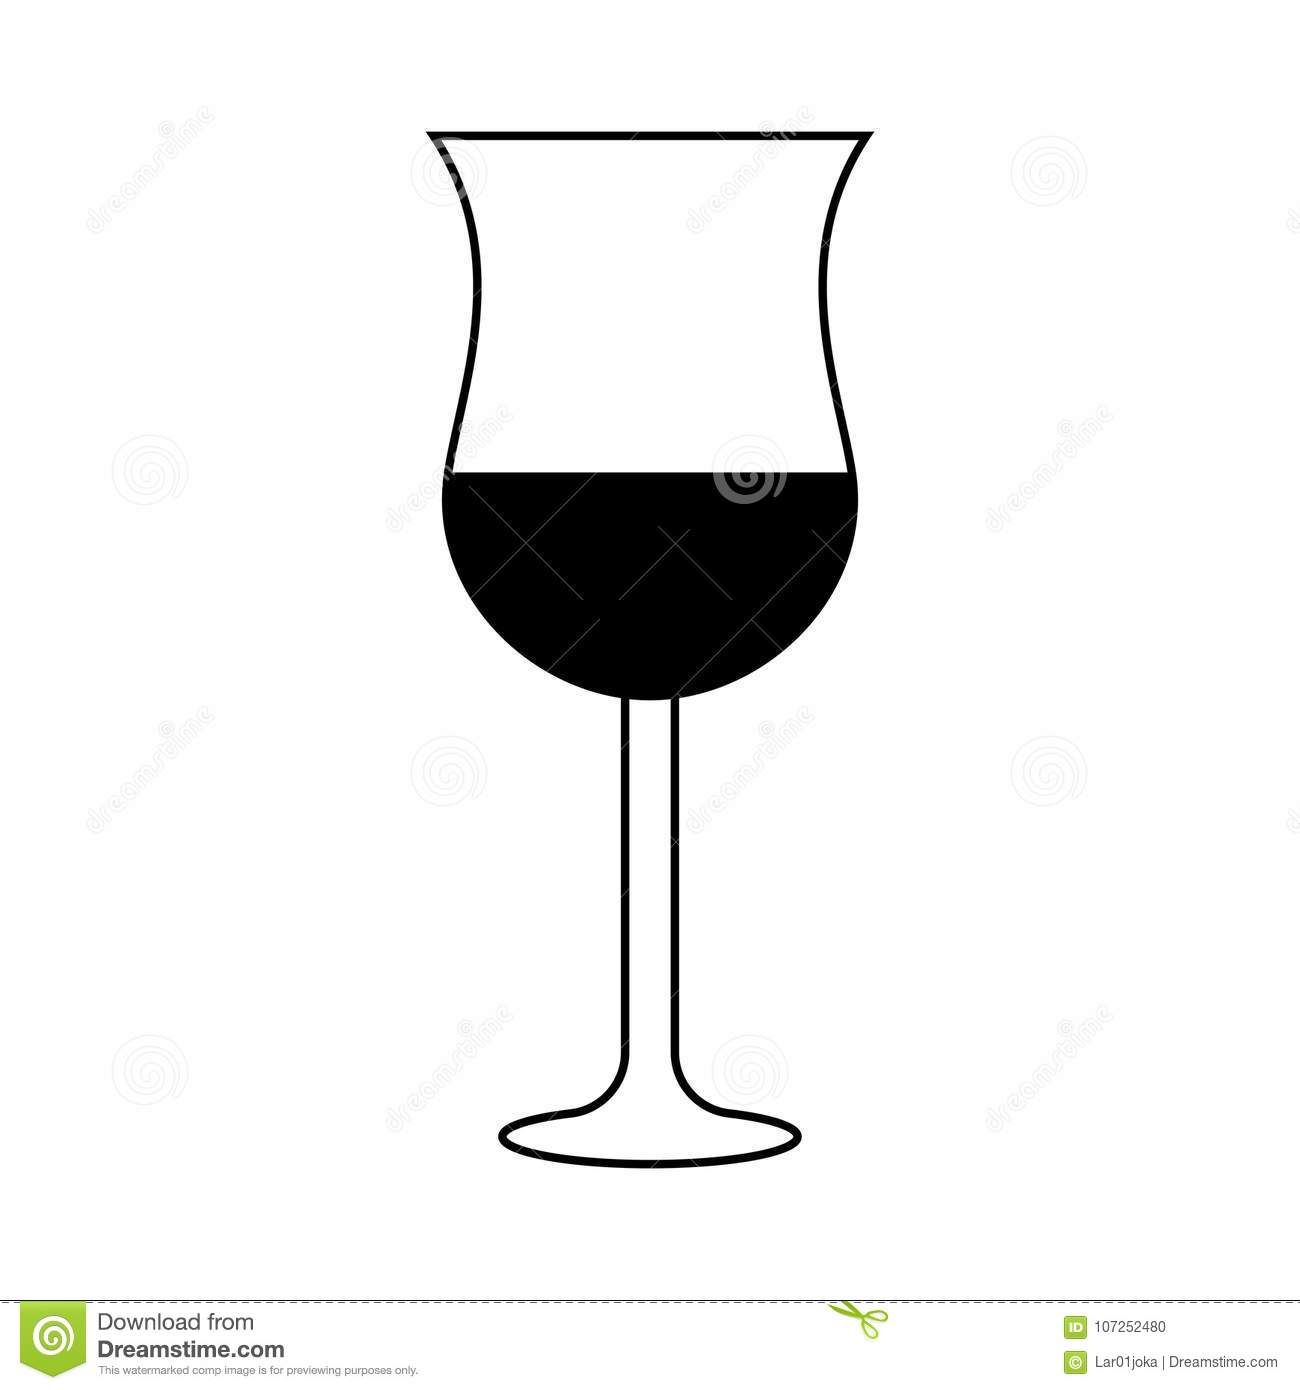 Isolated wine glass